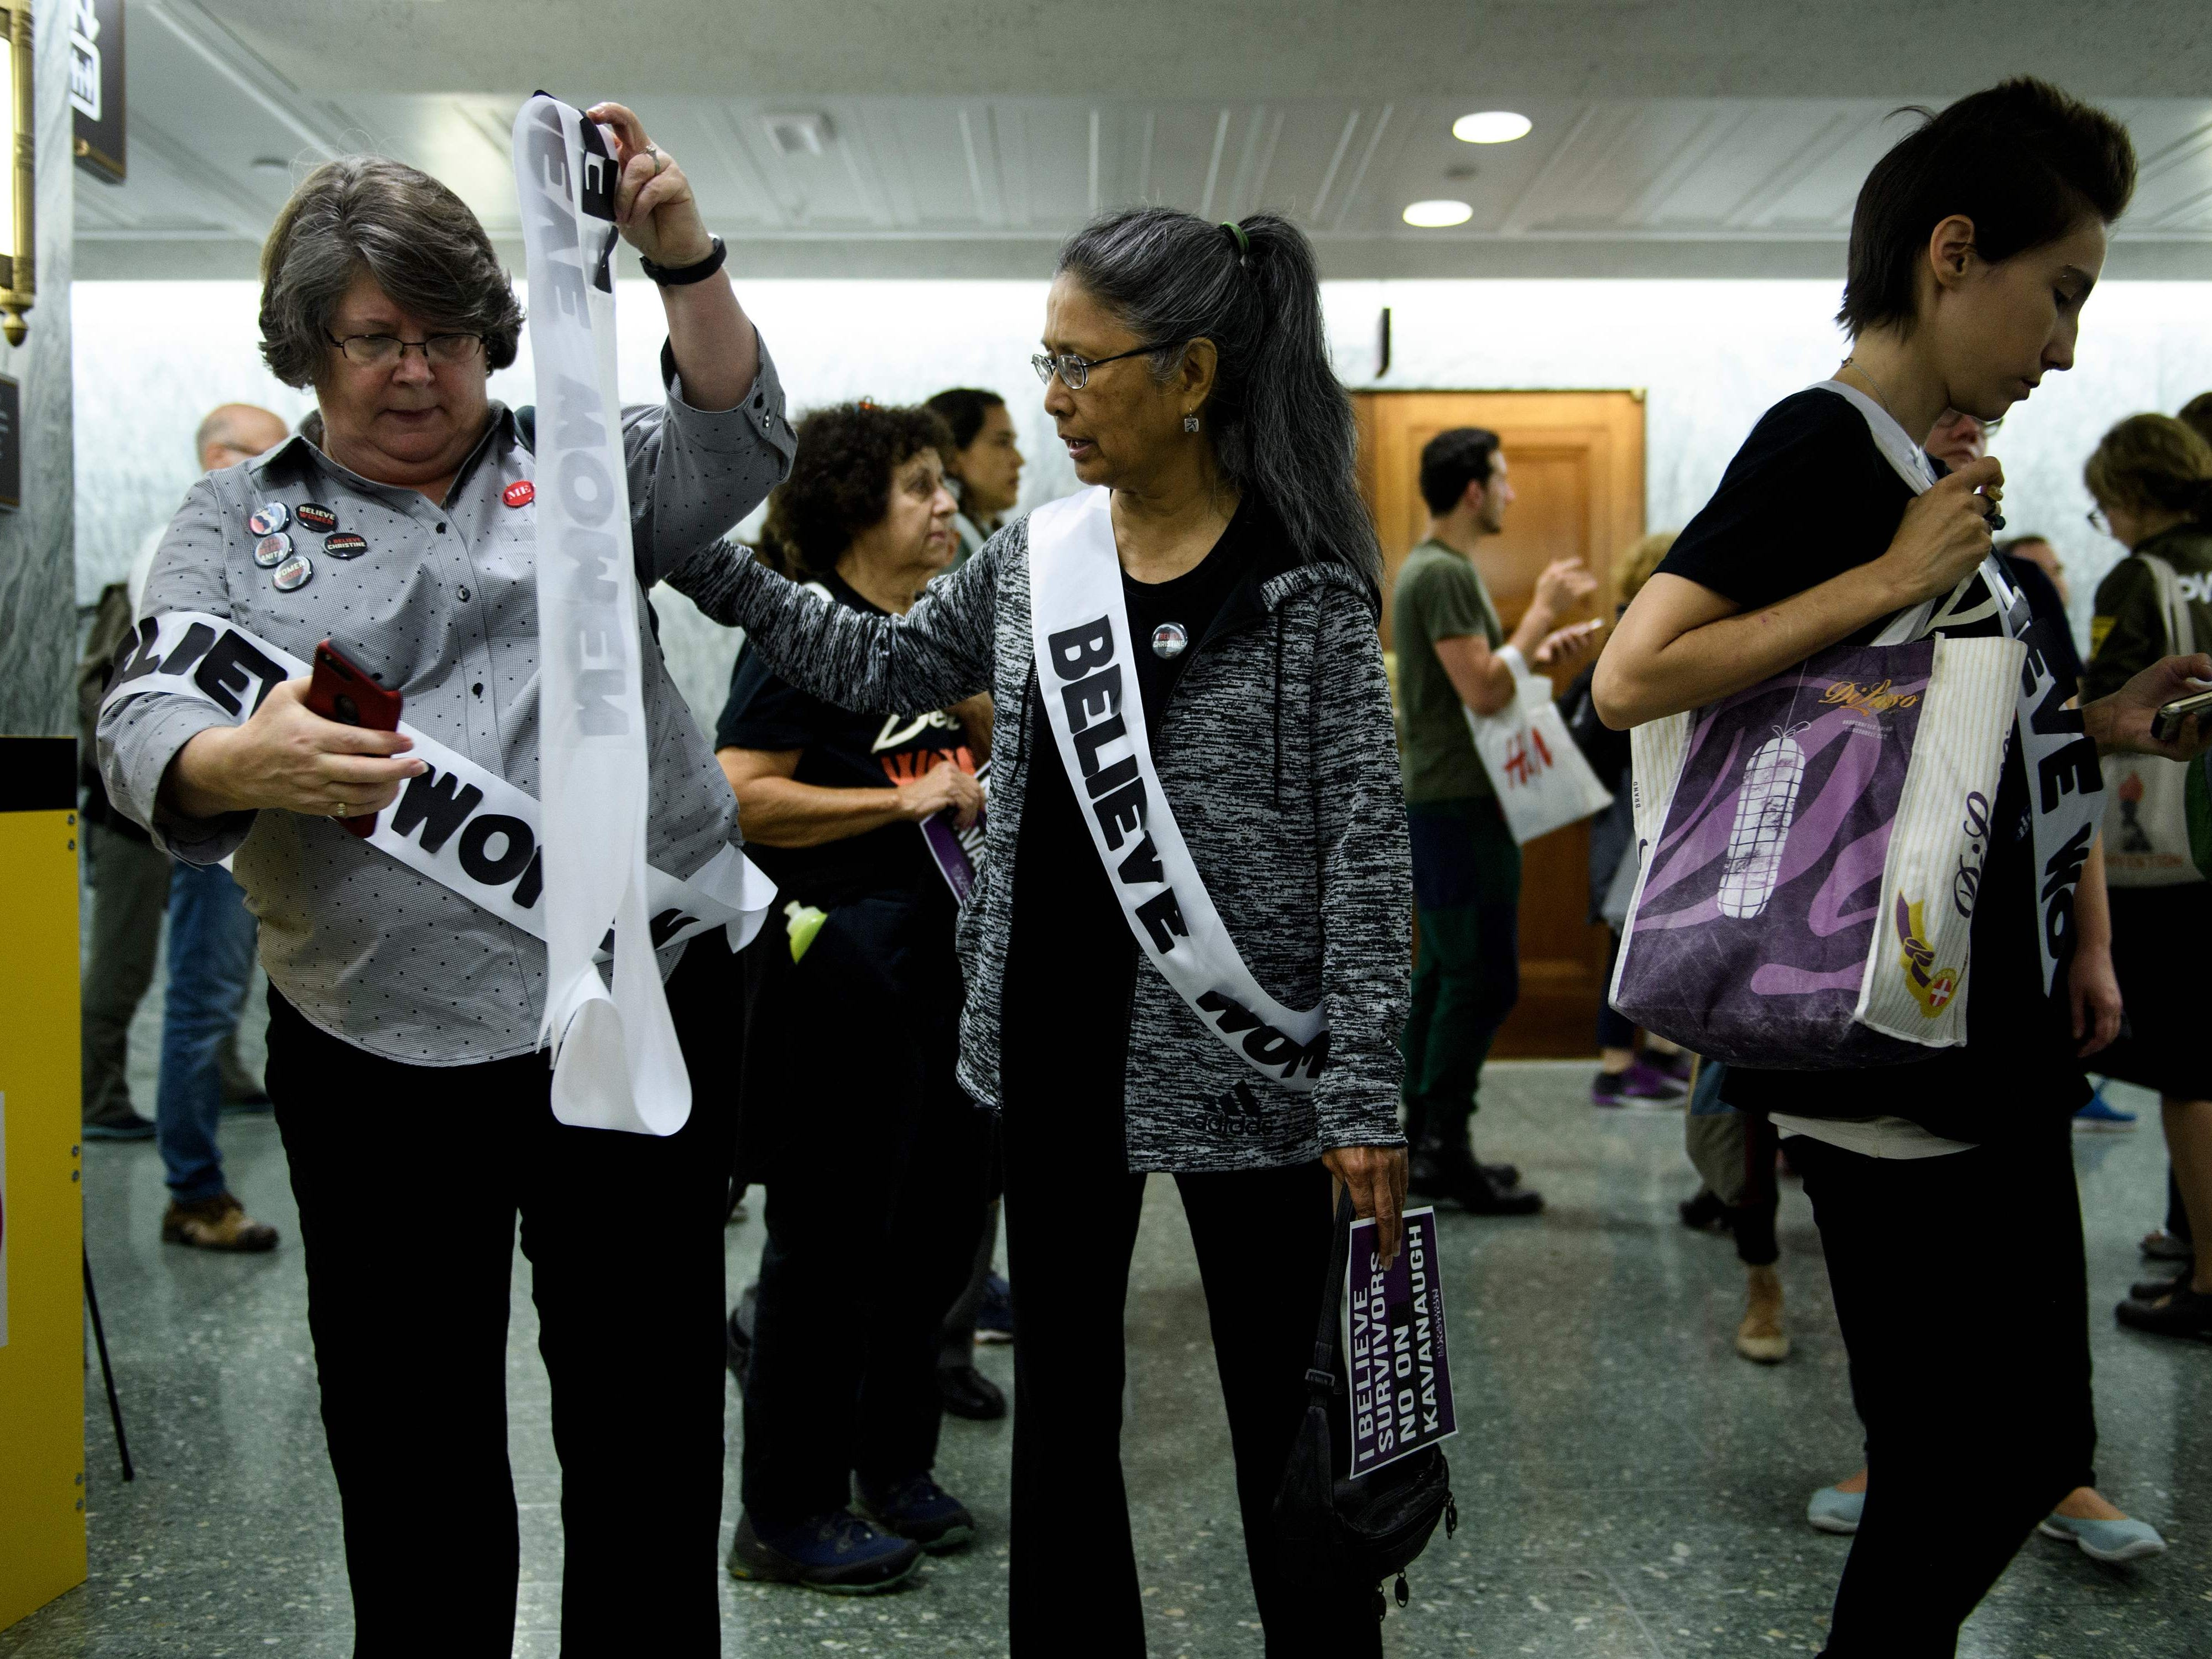 Activists walk through the halls of Dirksen Senate Office Building during protests against Judge Brett Kavanaugh on Capitol Hill September 26, 2018 in Washington, DC. - The US Senate Judiciary Committee has scheduled for Friday a preliminary vote on the nomination of Supreme Court pick Brett Kavanaugh, who is under fire over claims of sexual assault in his youth. (Photo by Brendan Smialowski / AFP)BRENDAN SMIALOWSKI/AFP/Getty Images ORIG FILE ID: AFP_19H1NL